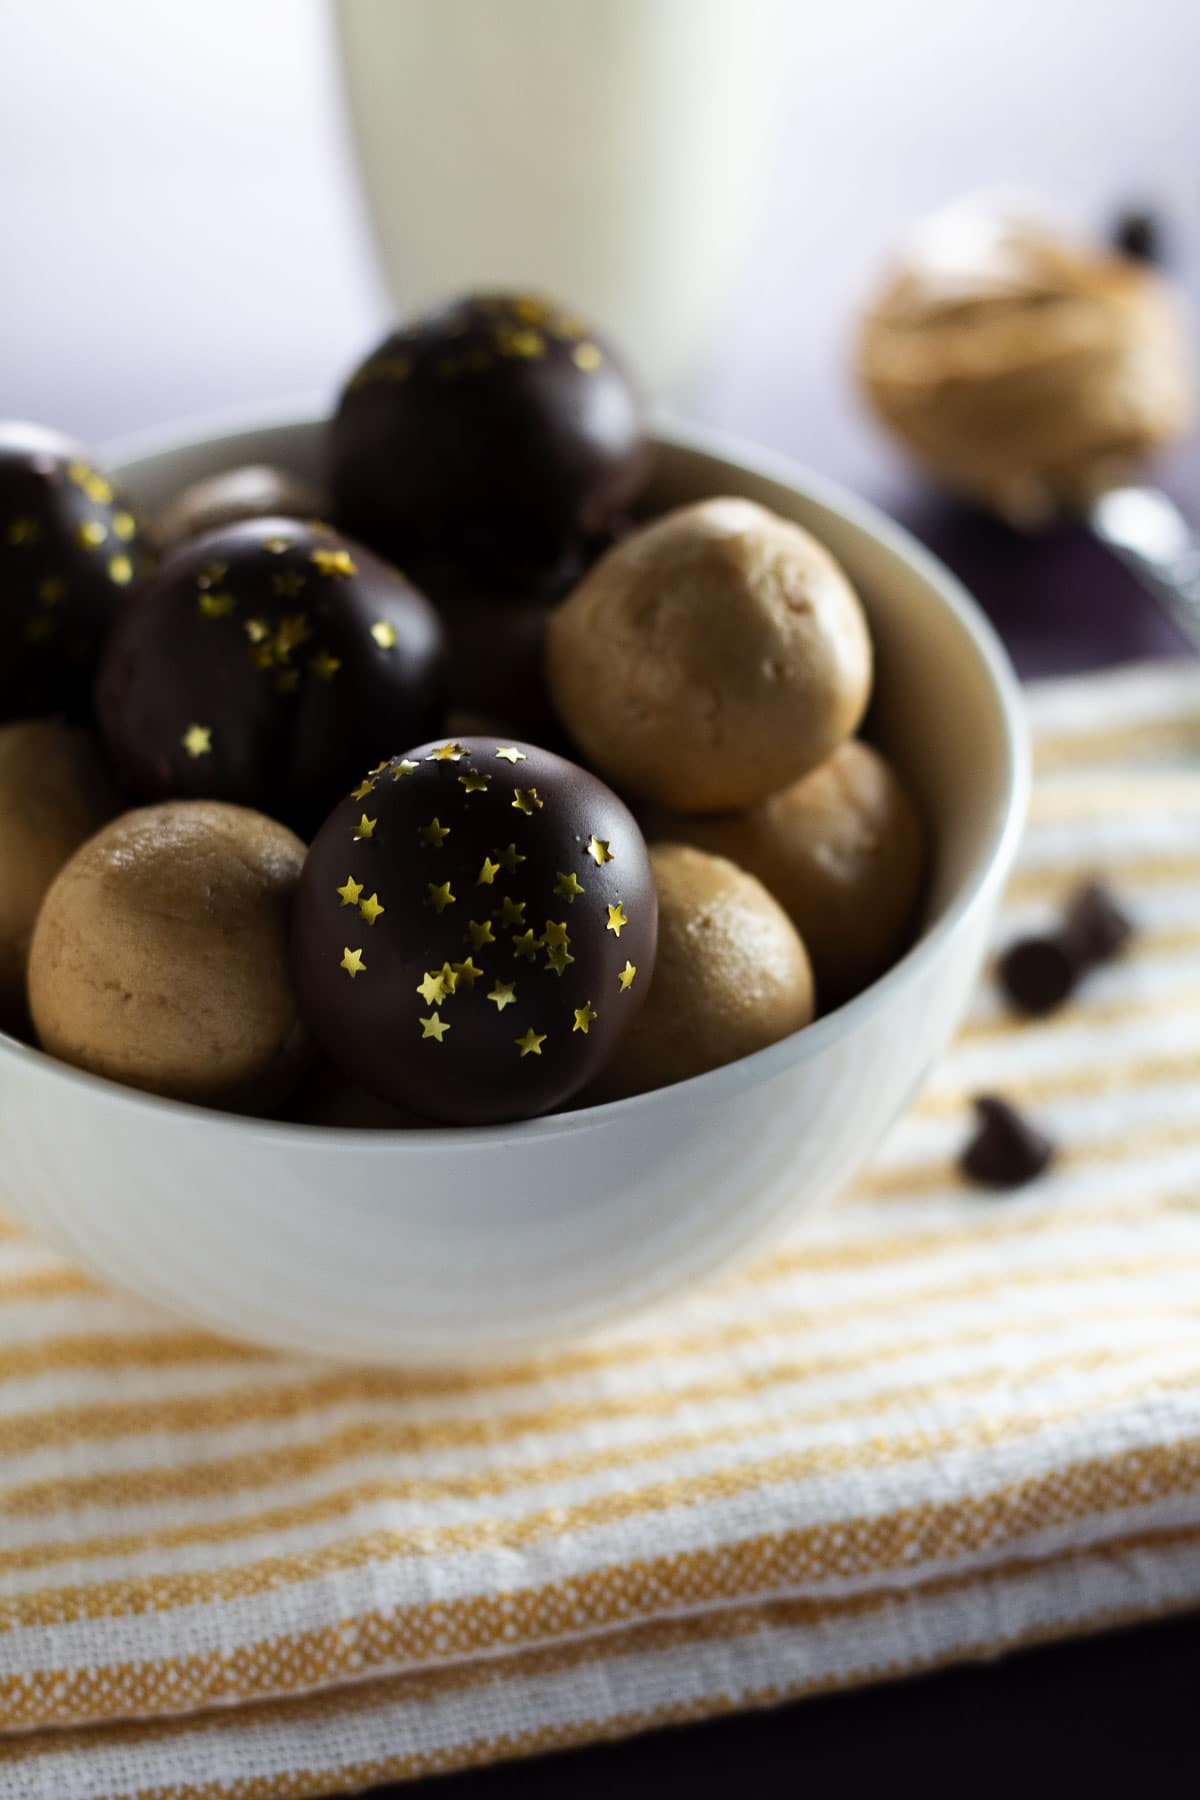 This image is an up-close shot of our old-fashioned peanut butter balls.